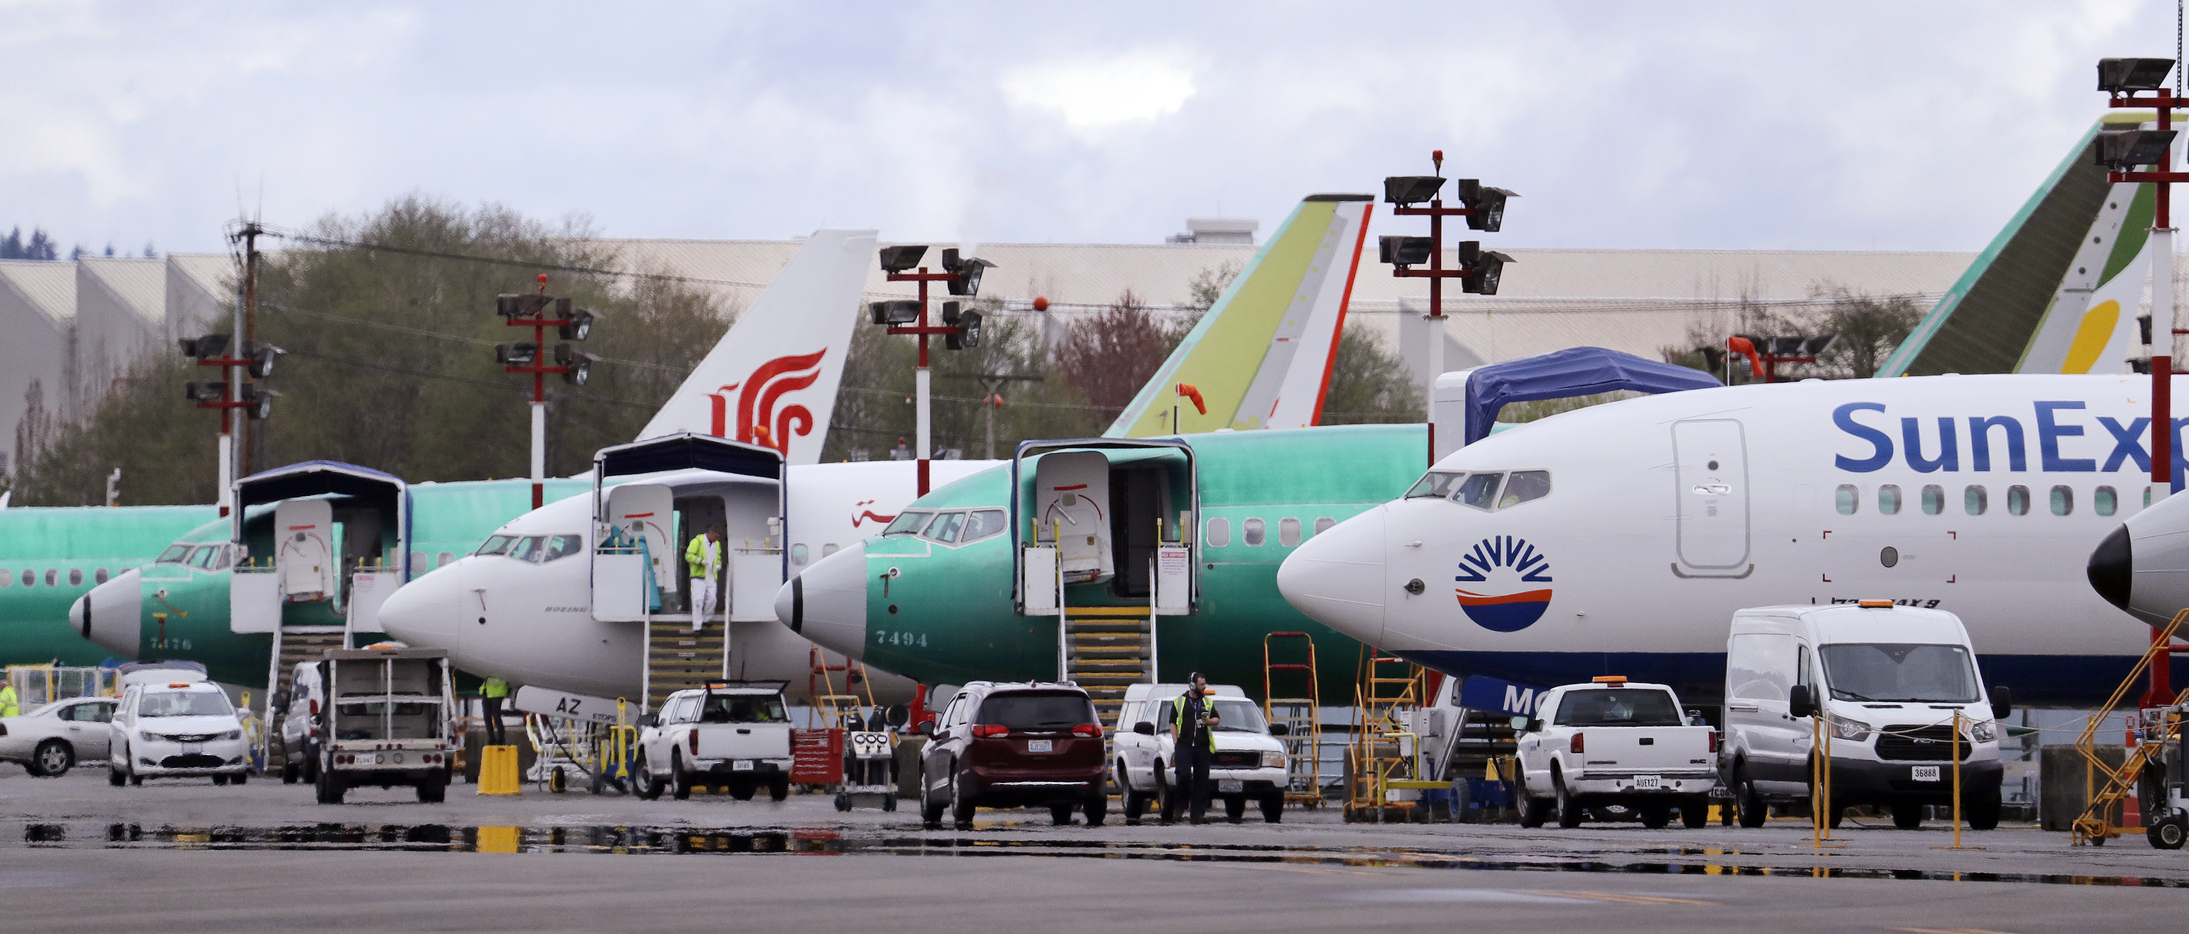 FILE - In this April 8, 2019, file photo, Boeing 737 Max aircraft are parked at the airport adjacent to a Boeing Co. production facility in Renton, Wash. From airplanes made by Boeing to apples, cherries and wheat grown by farmers, no other state is…